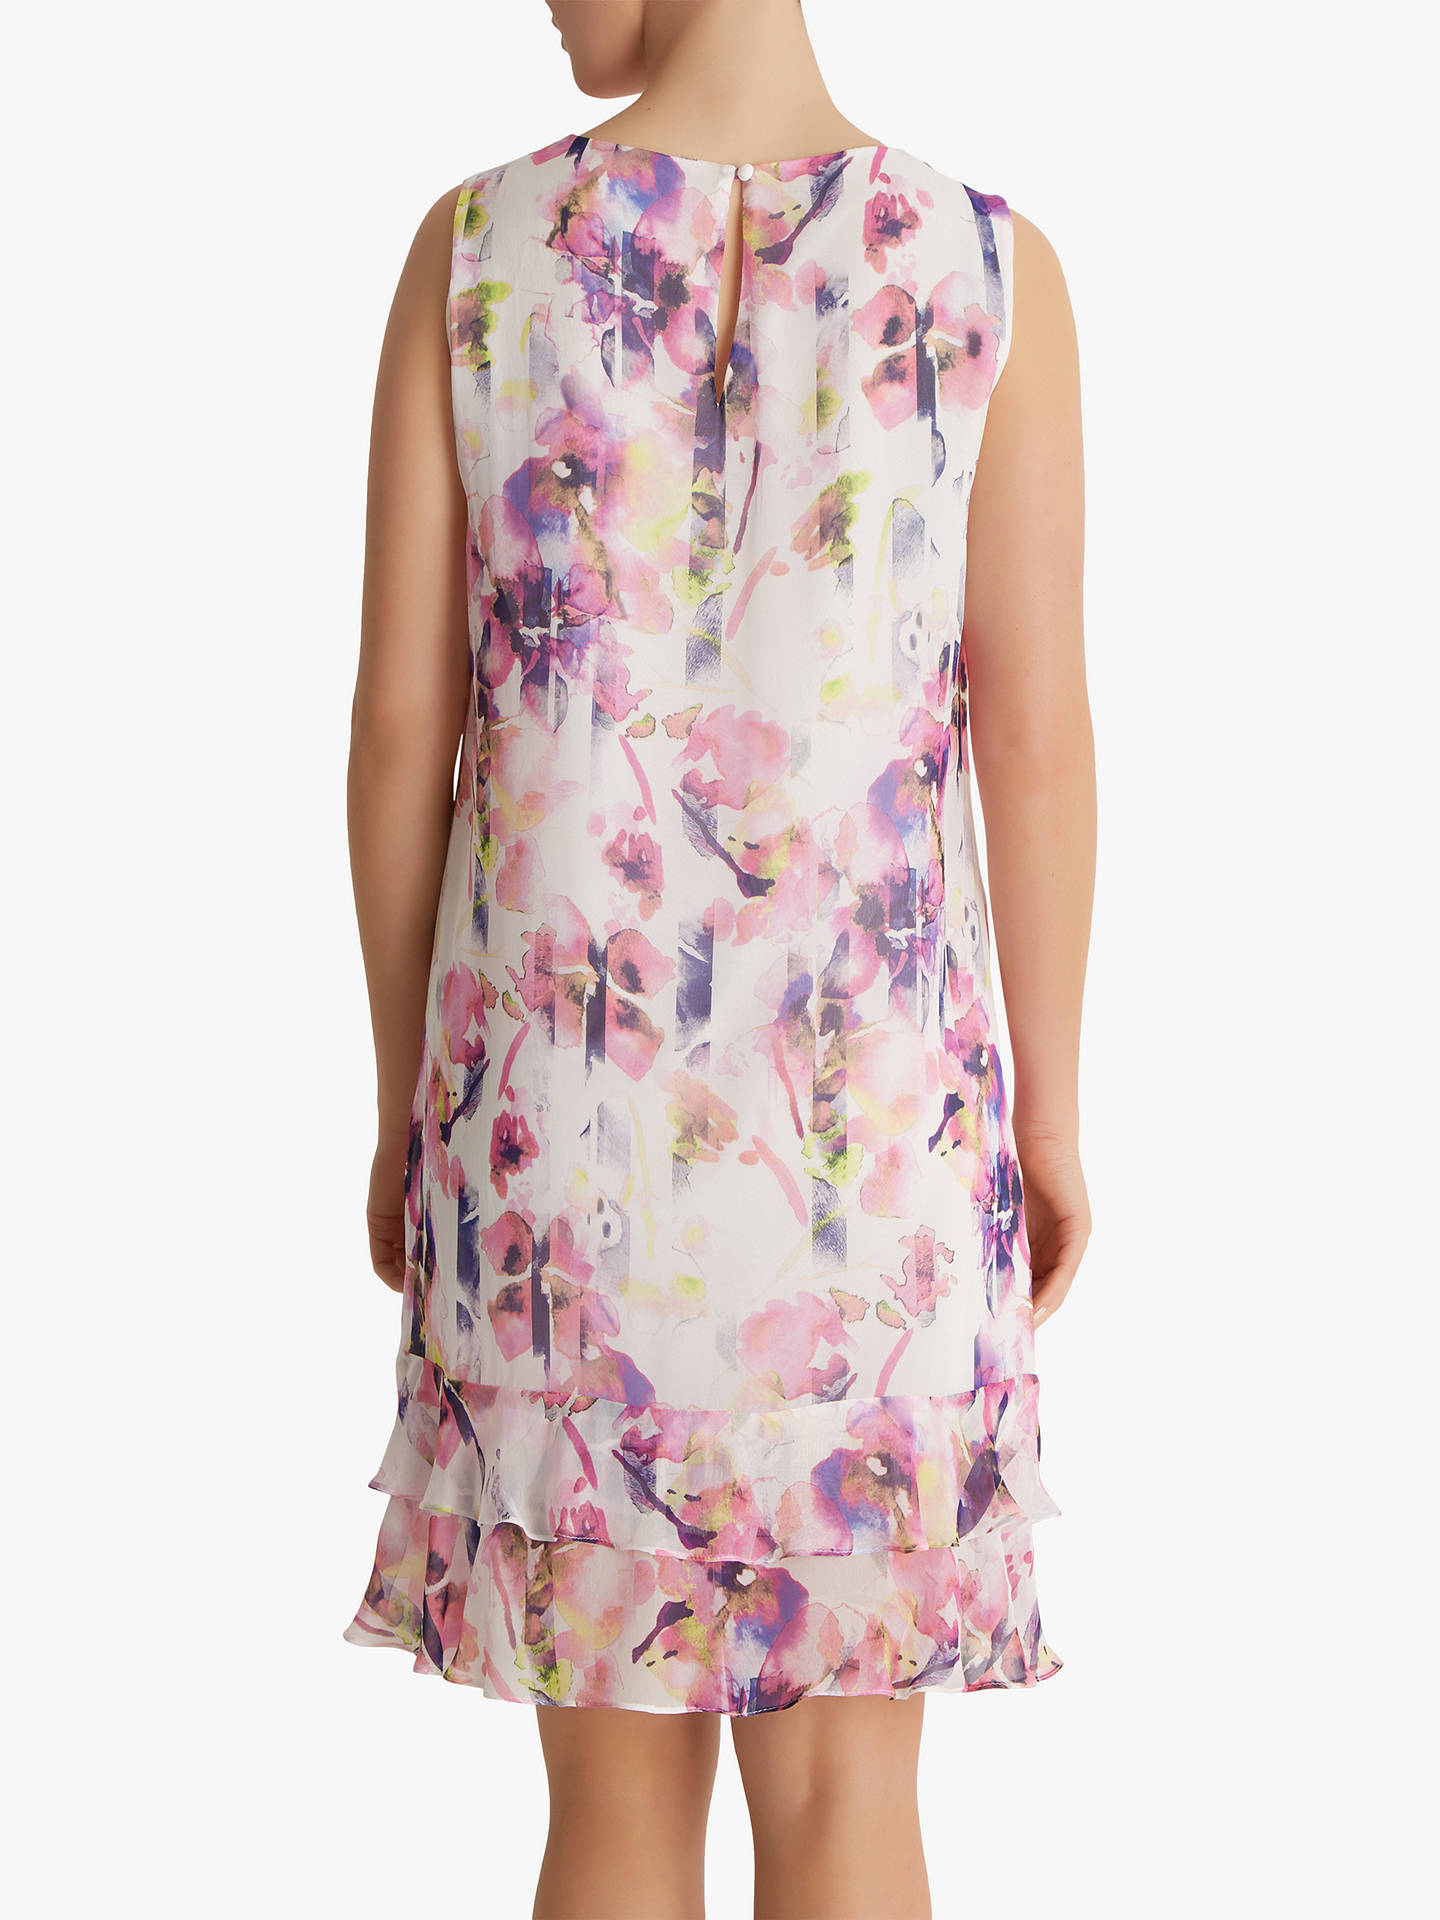 Buy Fenn Wright Manson Petite Romany Floral Ruffle Dress, Multi, 8 Online at johnlewis.com